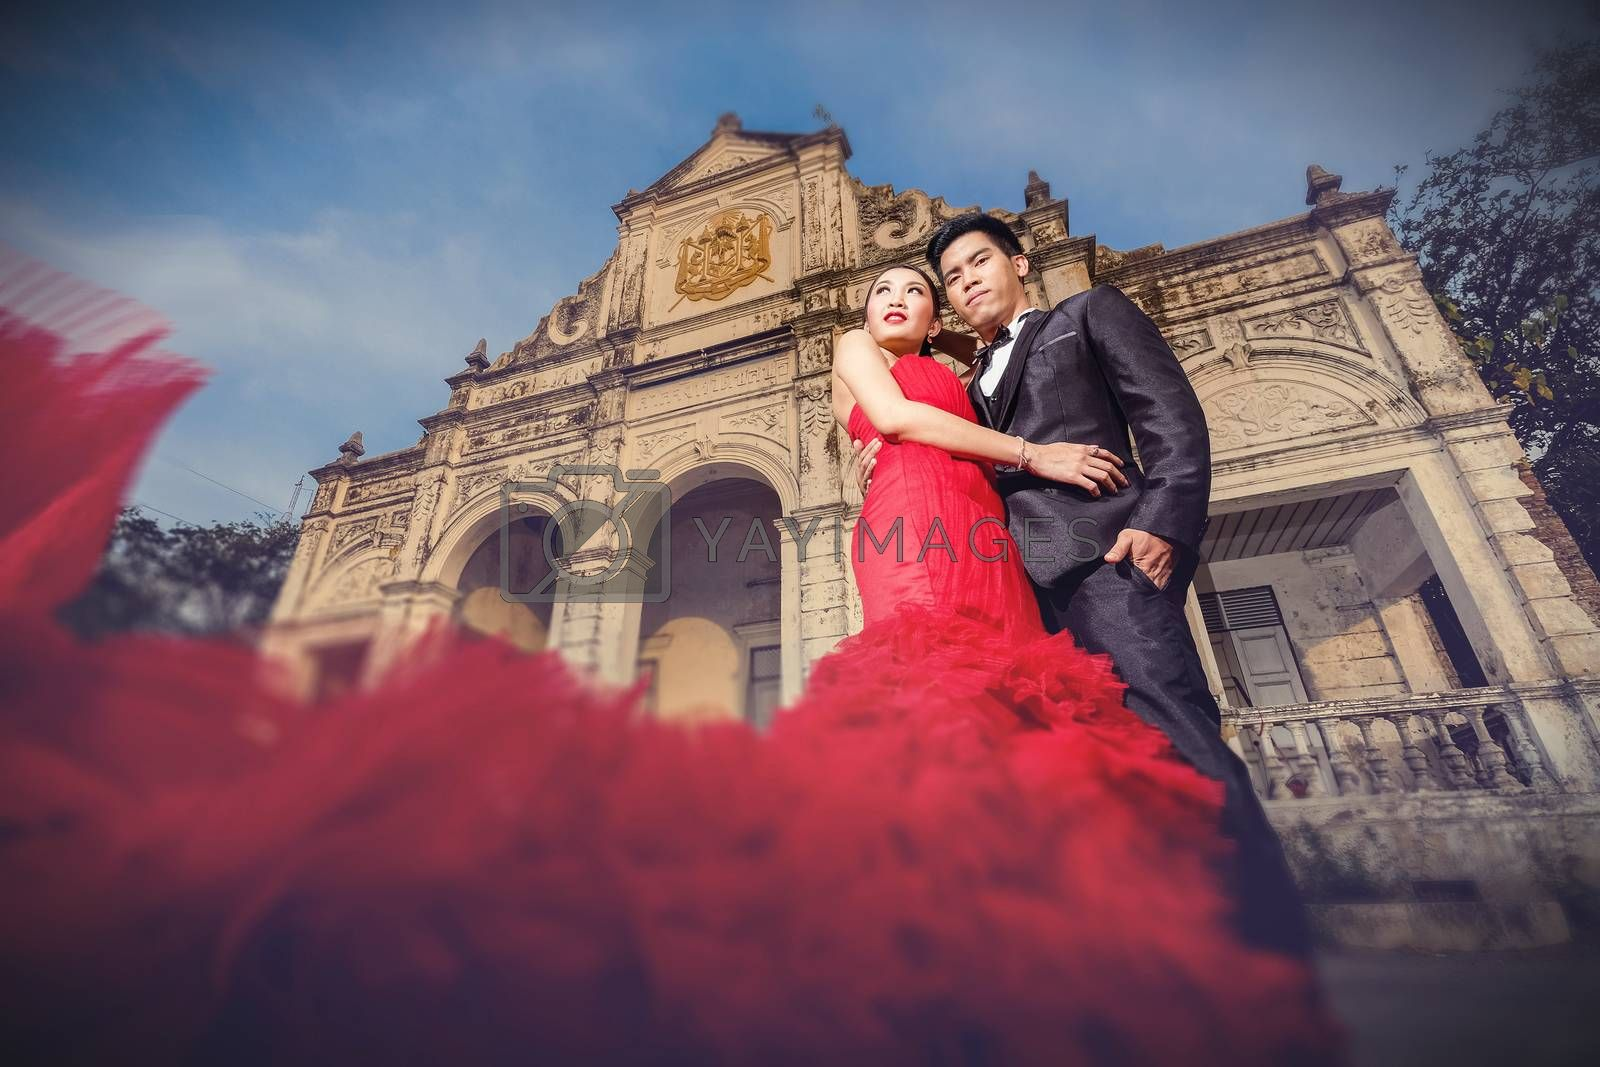 Man in black suit and Beautyful woman wearing fashionable red dress